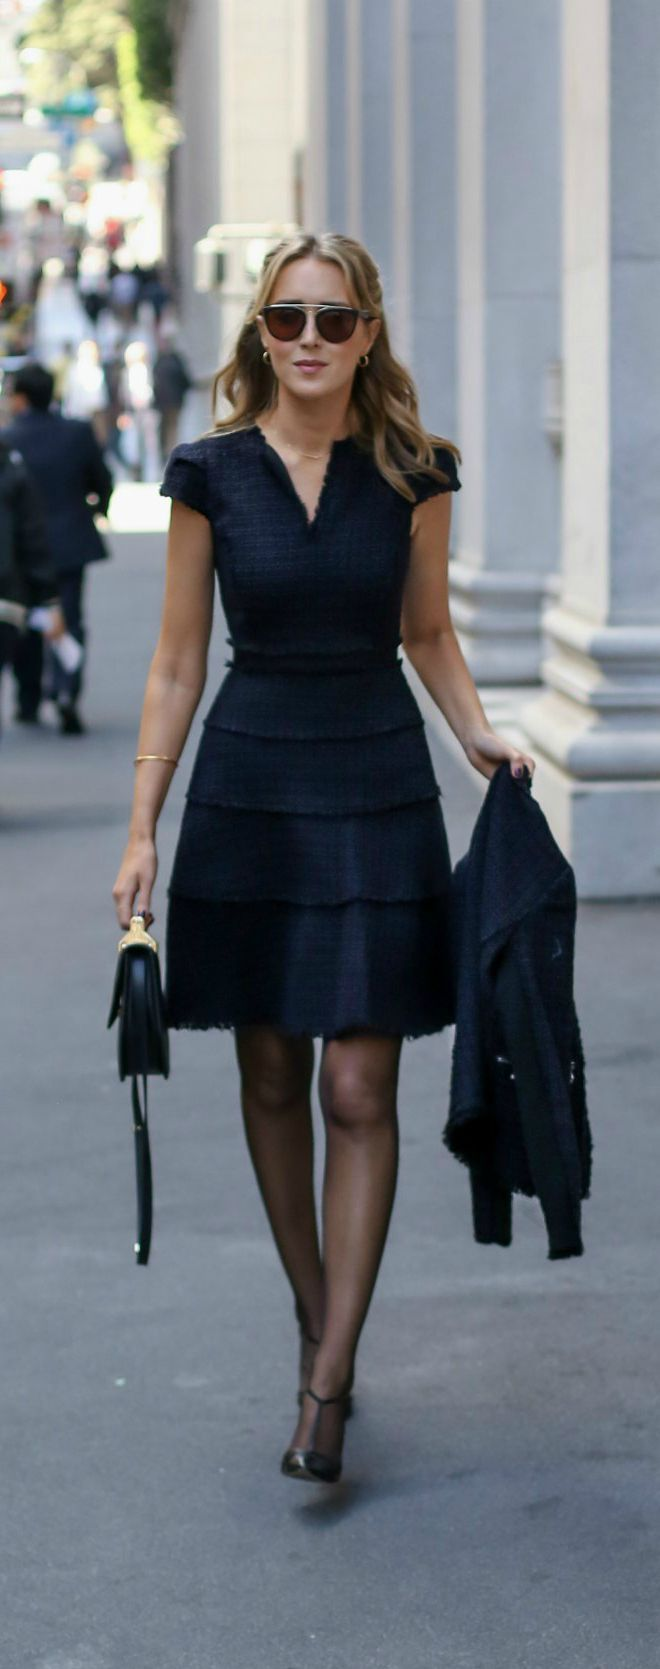 Black dress navy suit - Black And Navy Tweed Fit And Flare Short Sleeve Dress With Coordinating Suit Jacket Perfect For